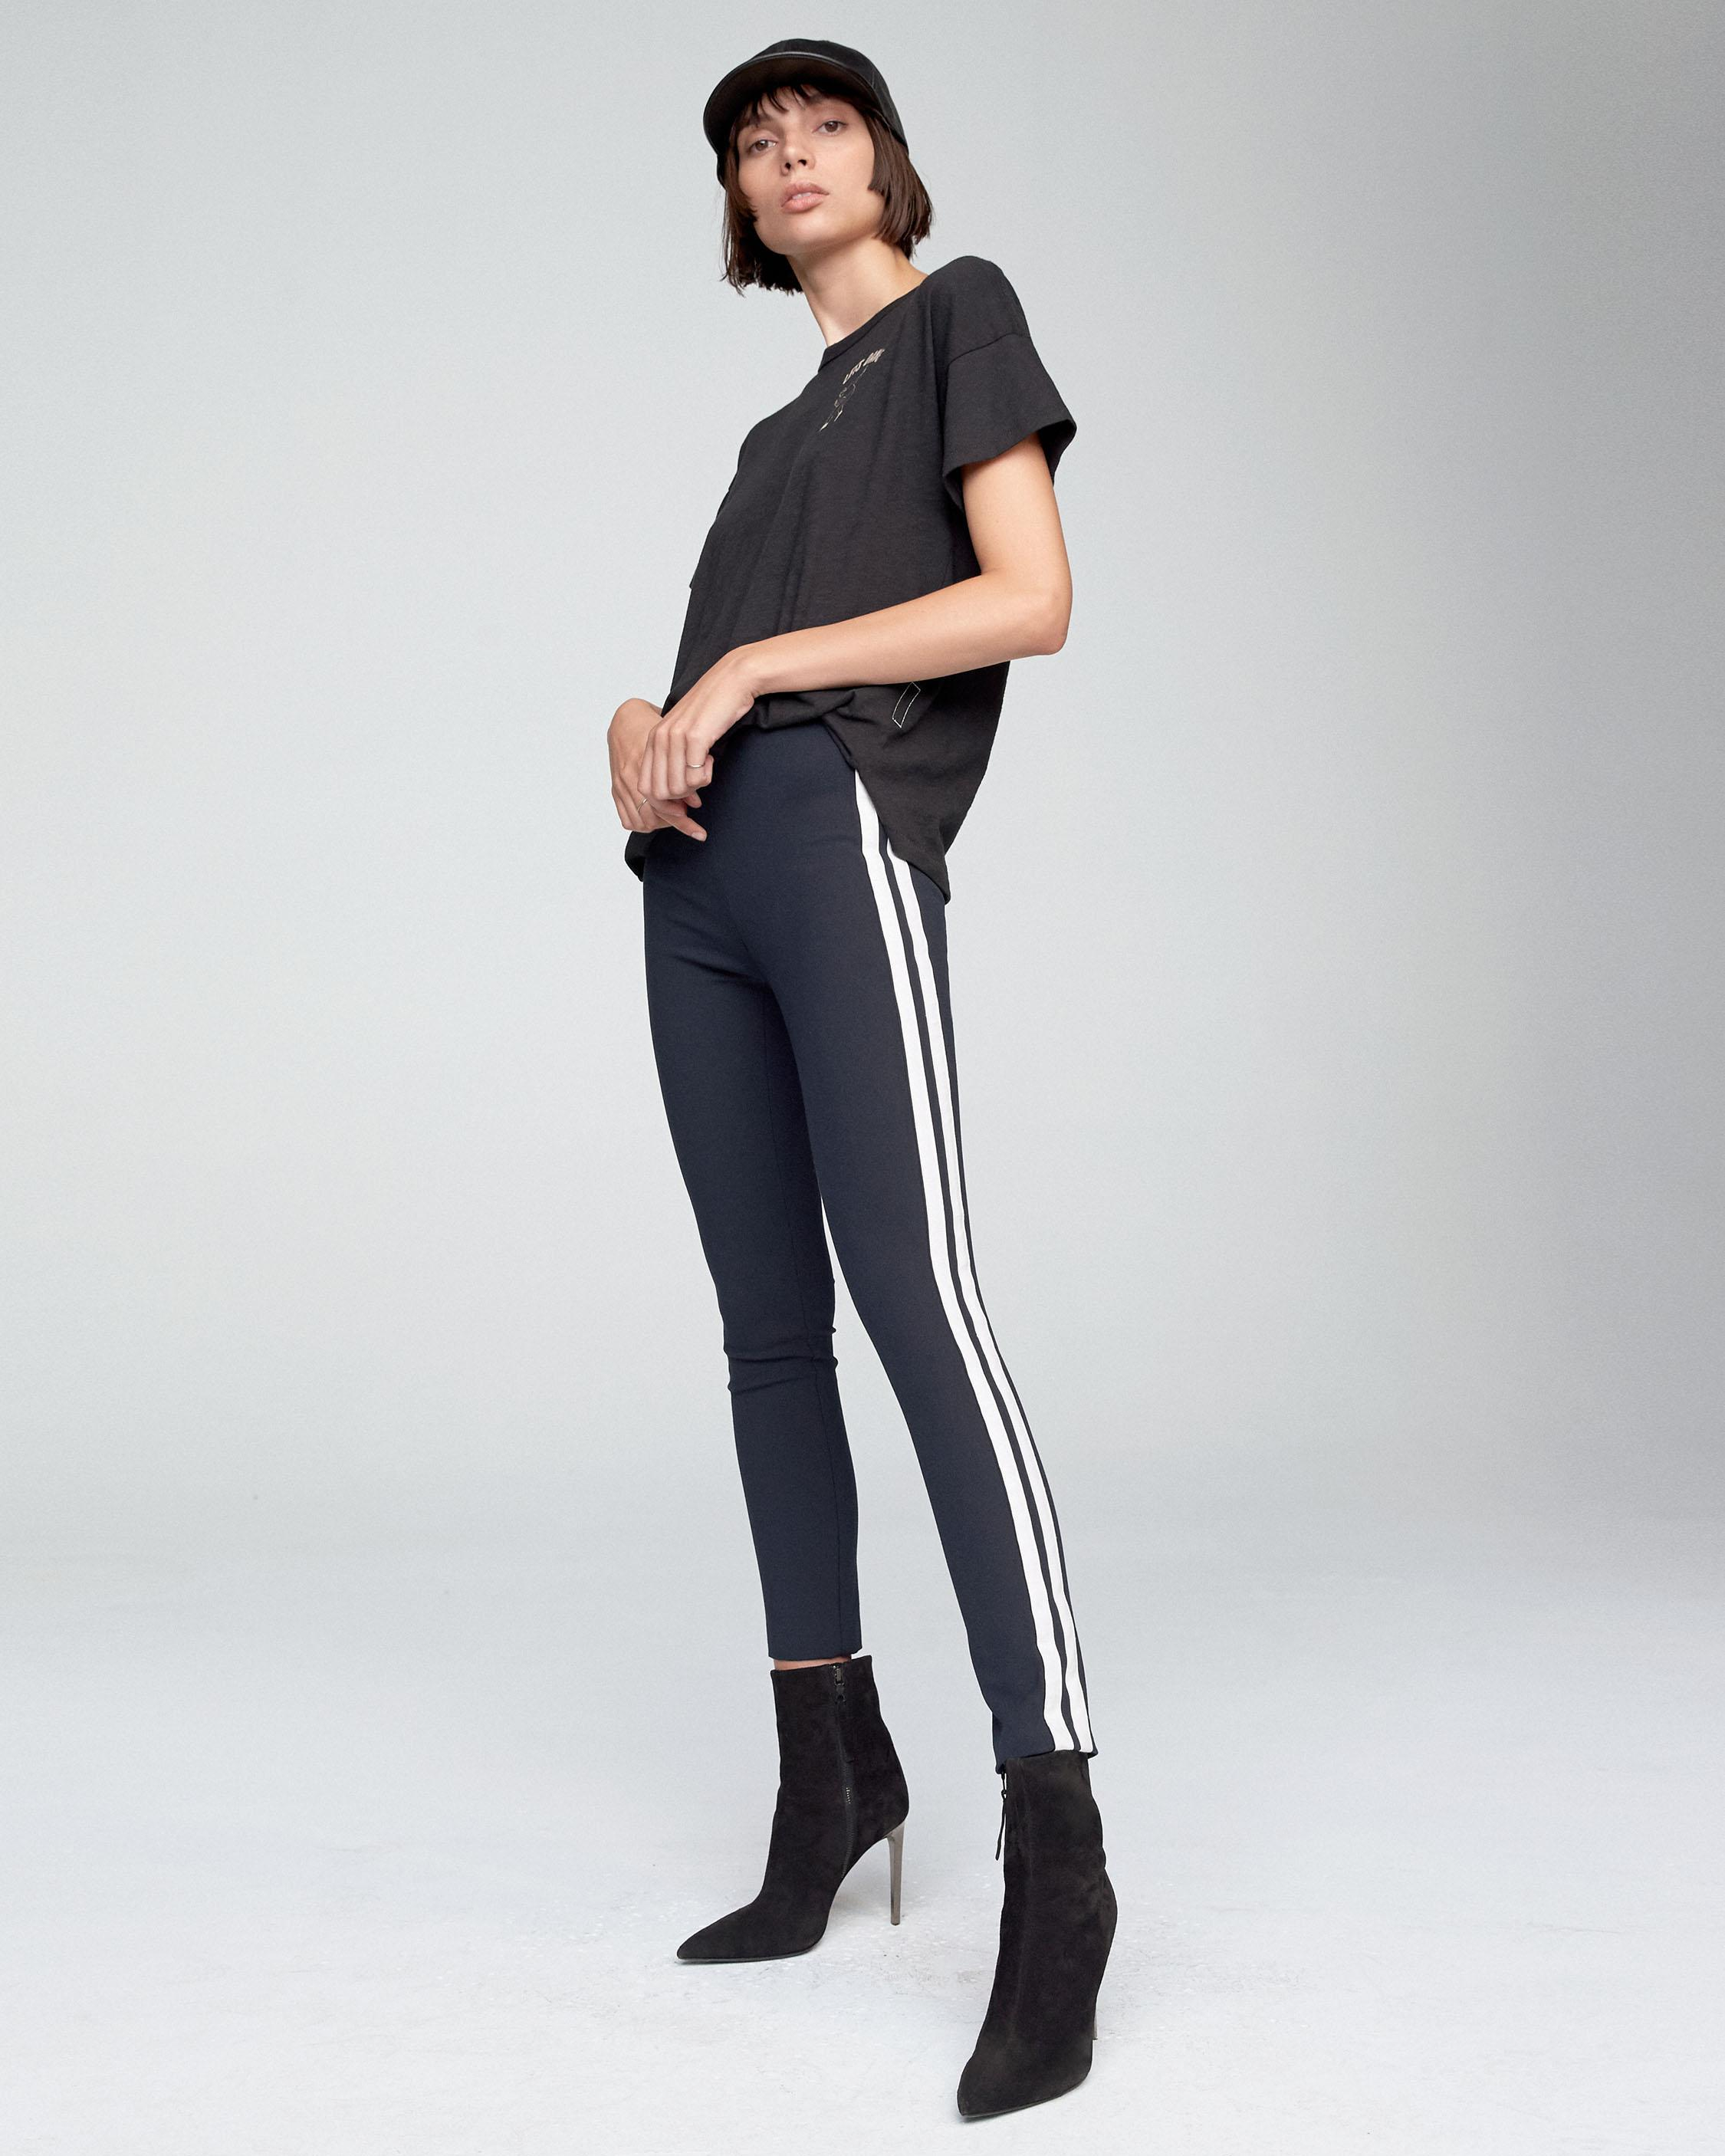 Free Shipping Genuine Free Shipping Ebay Rag & Bone Simone Pants With Stripe Cheap Fashionable For Nice For Sale Comfortable Cheap Price z4ciJ3HC